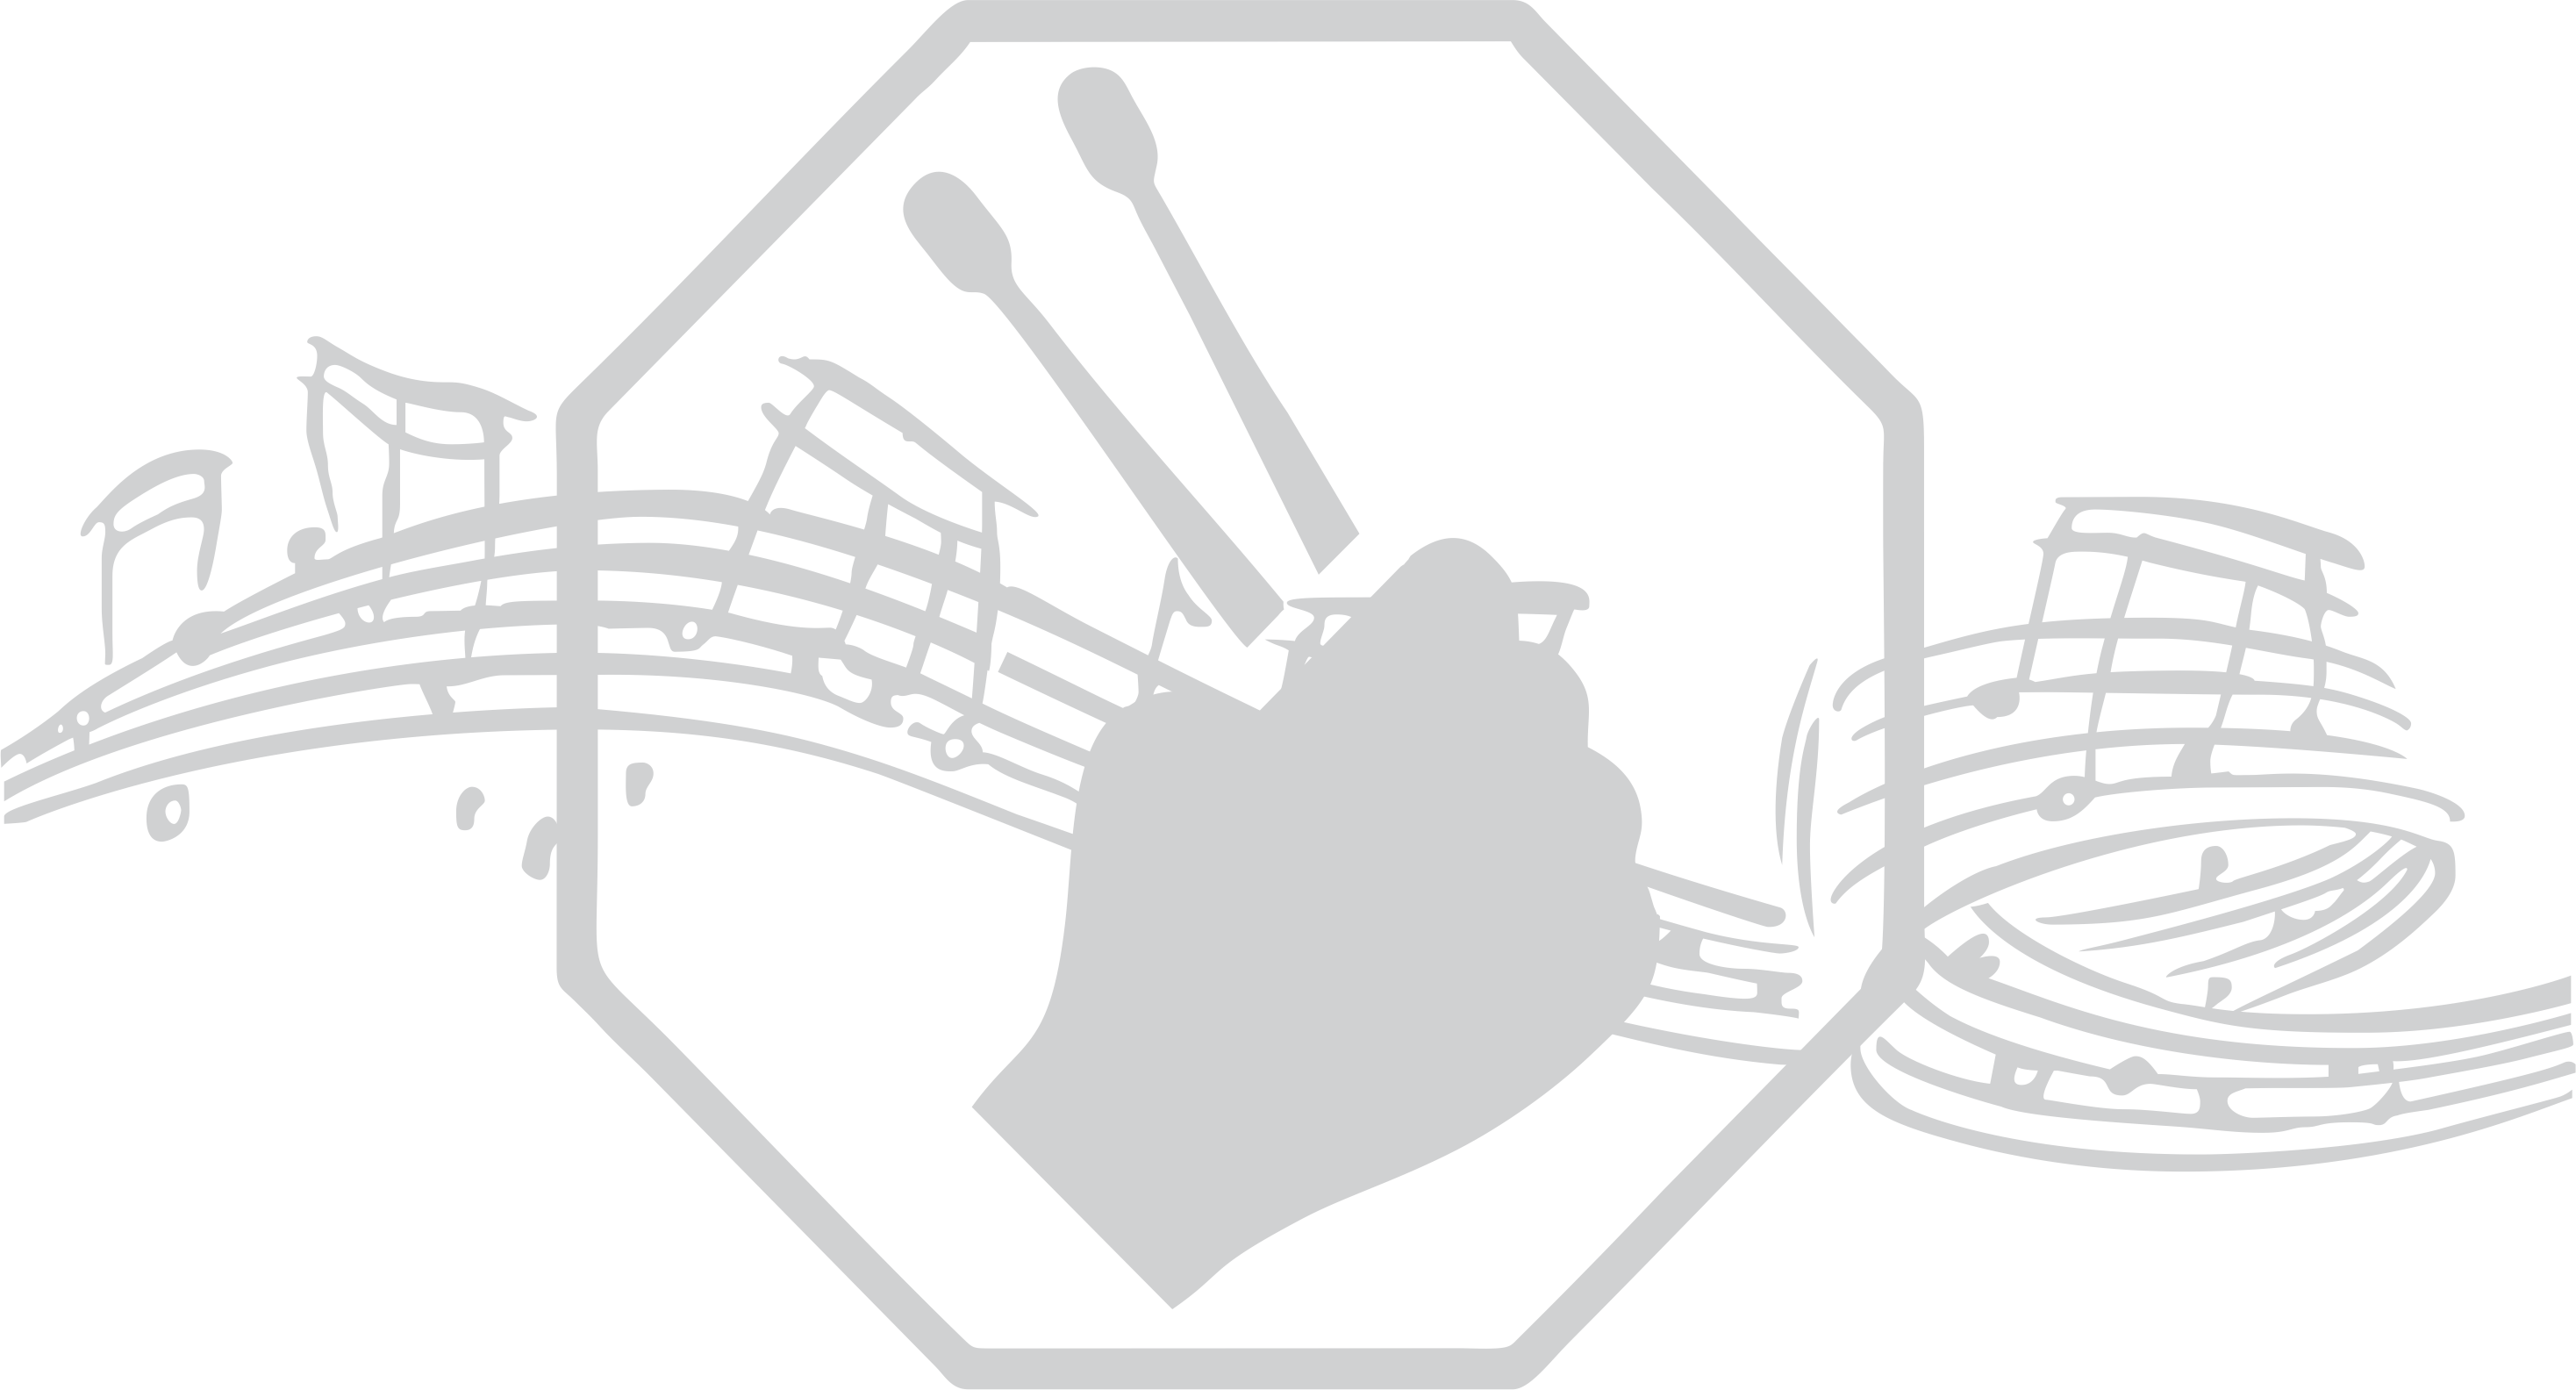 Download North Drumline beat The Stigma PNG Image with No 2936x1584